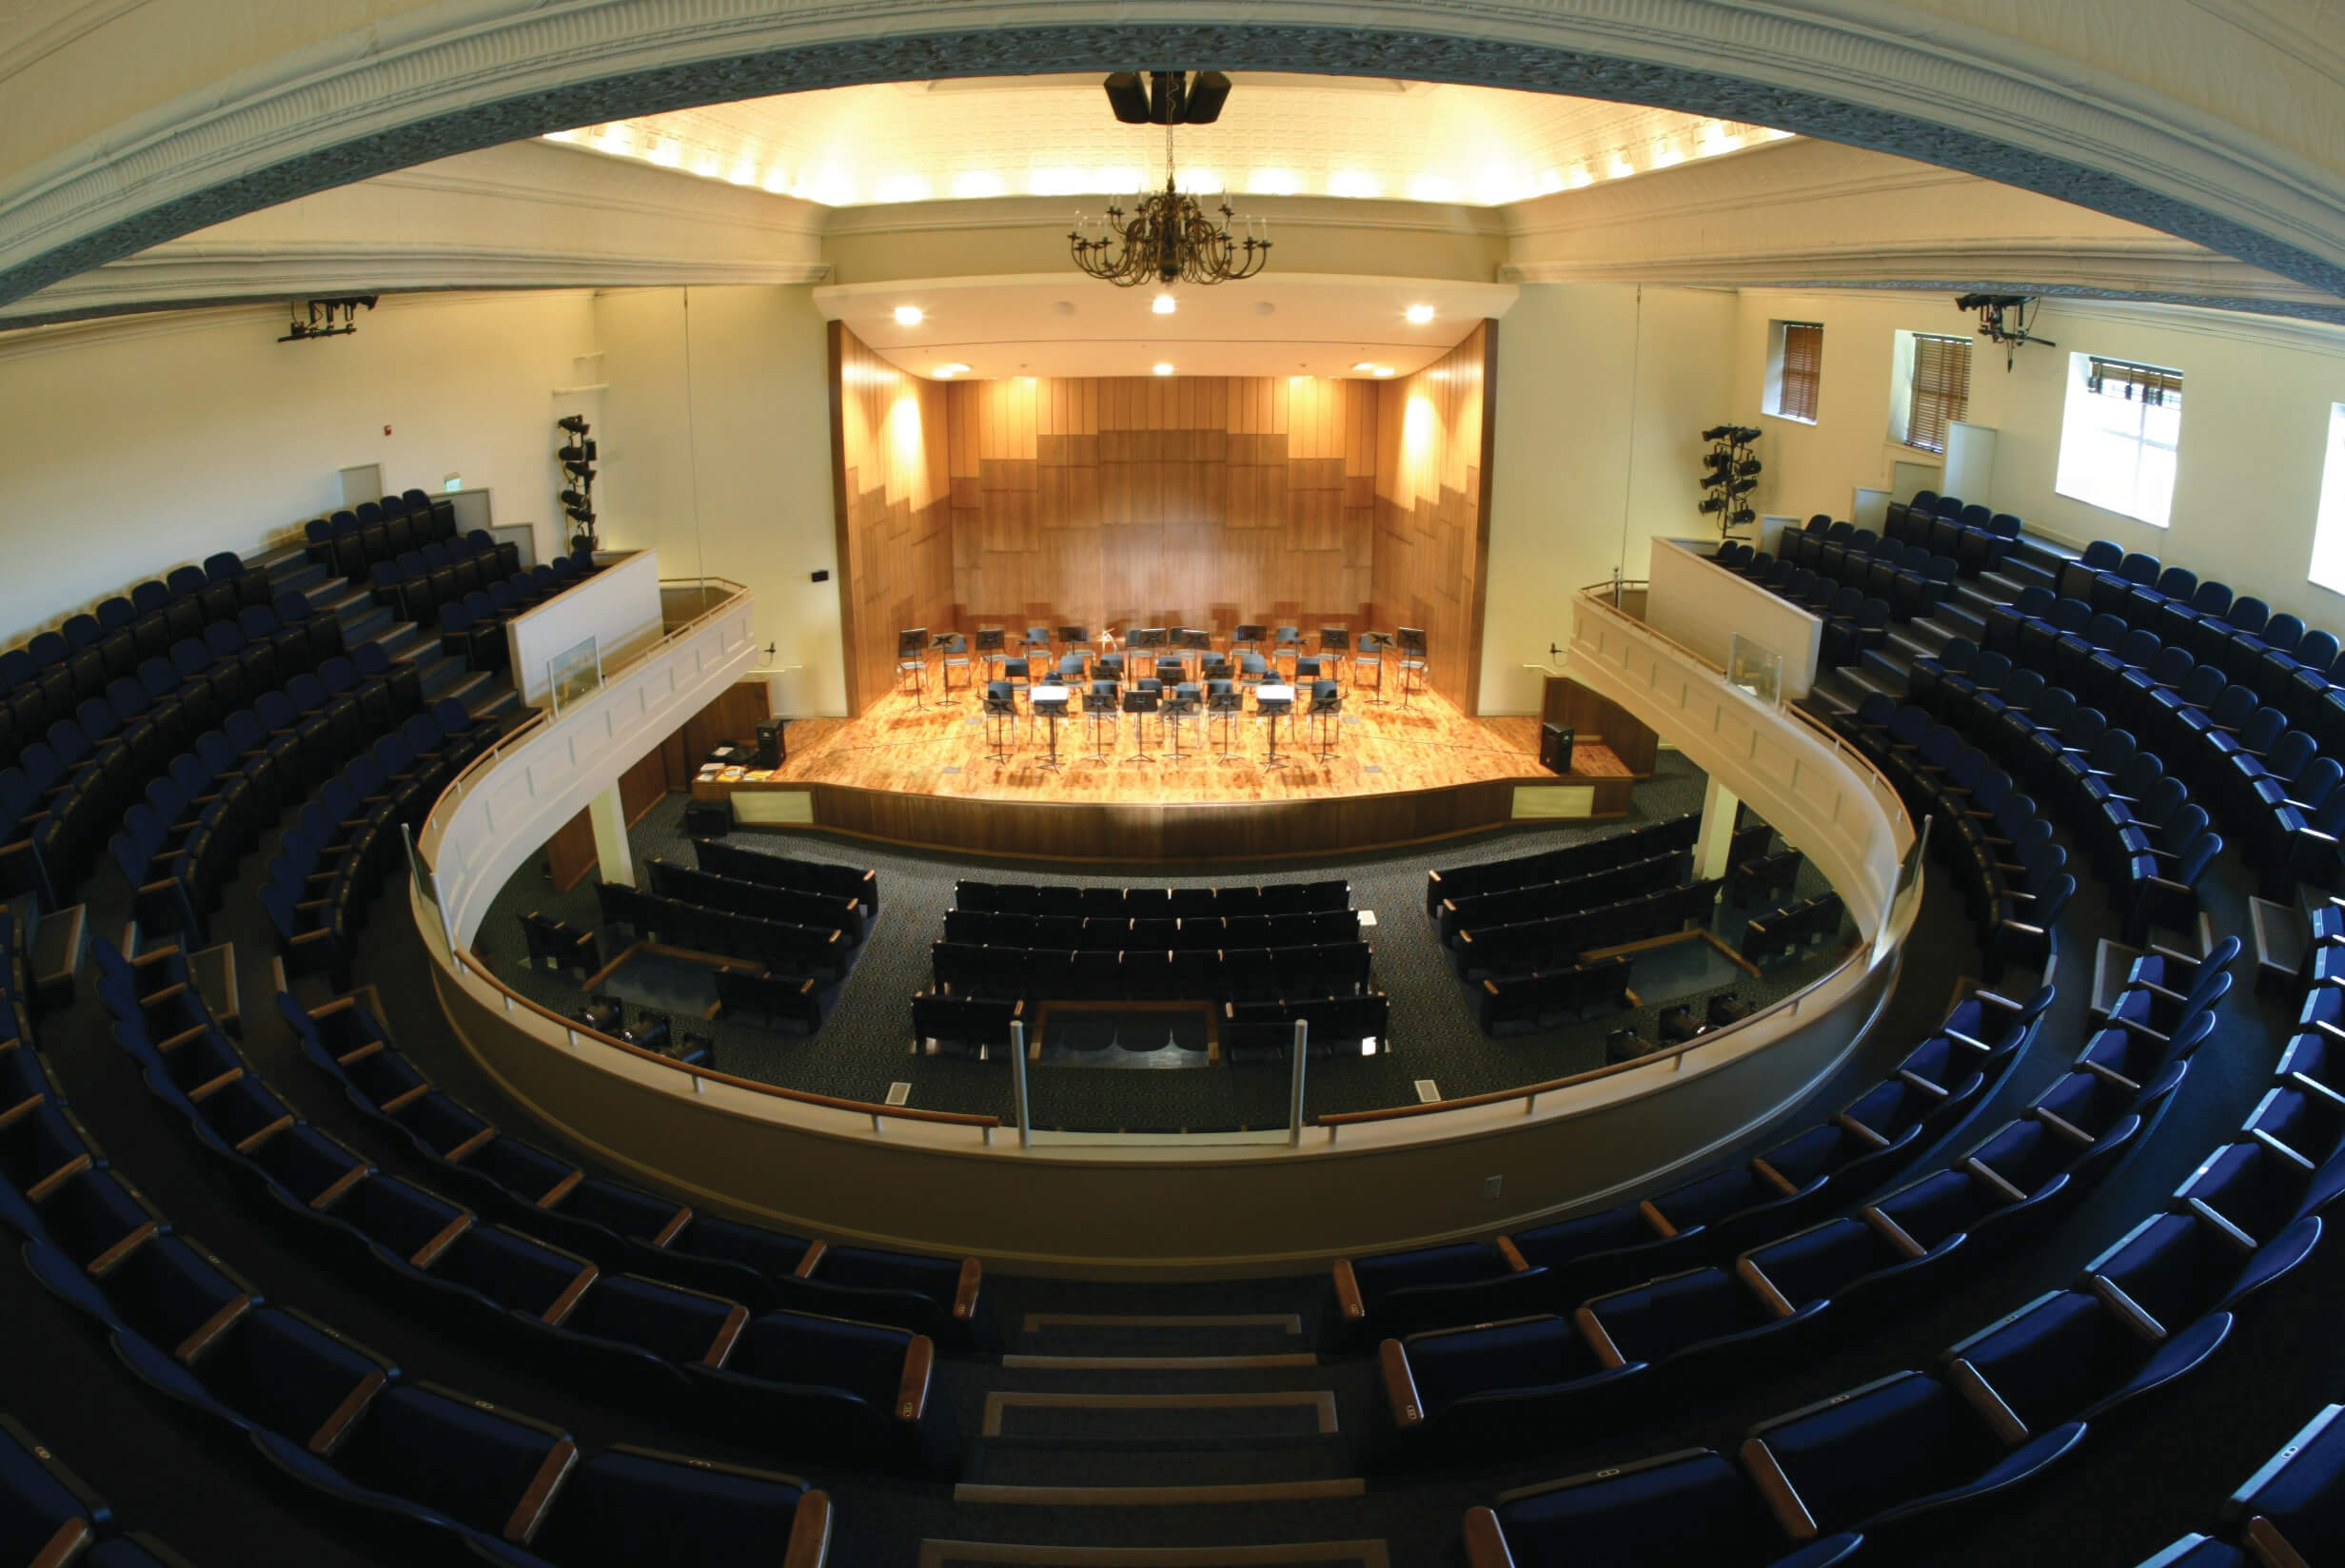 A view of Martin Hall from the balcony